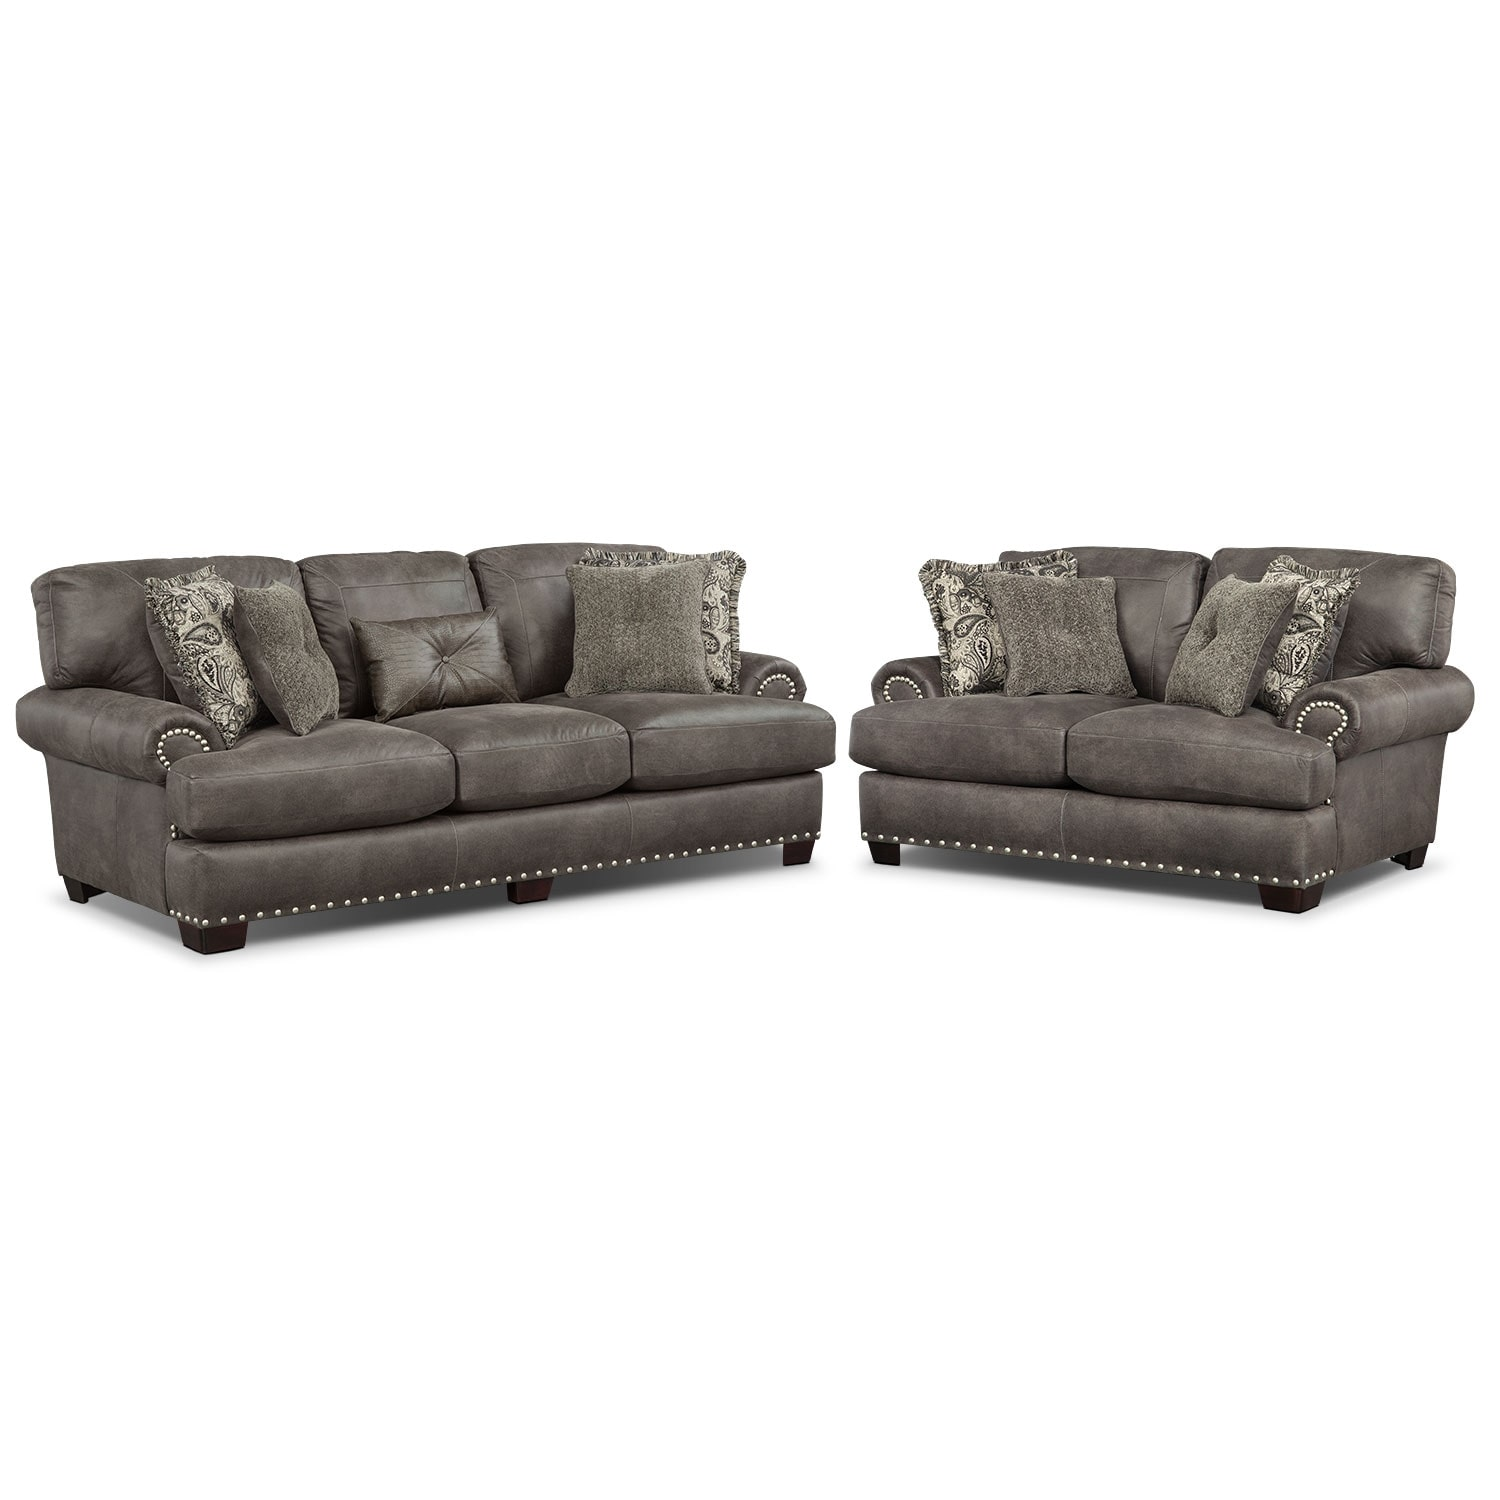 Living Room Furniture - Burlington Sofa and Loveseat Set - Steel